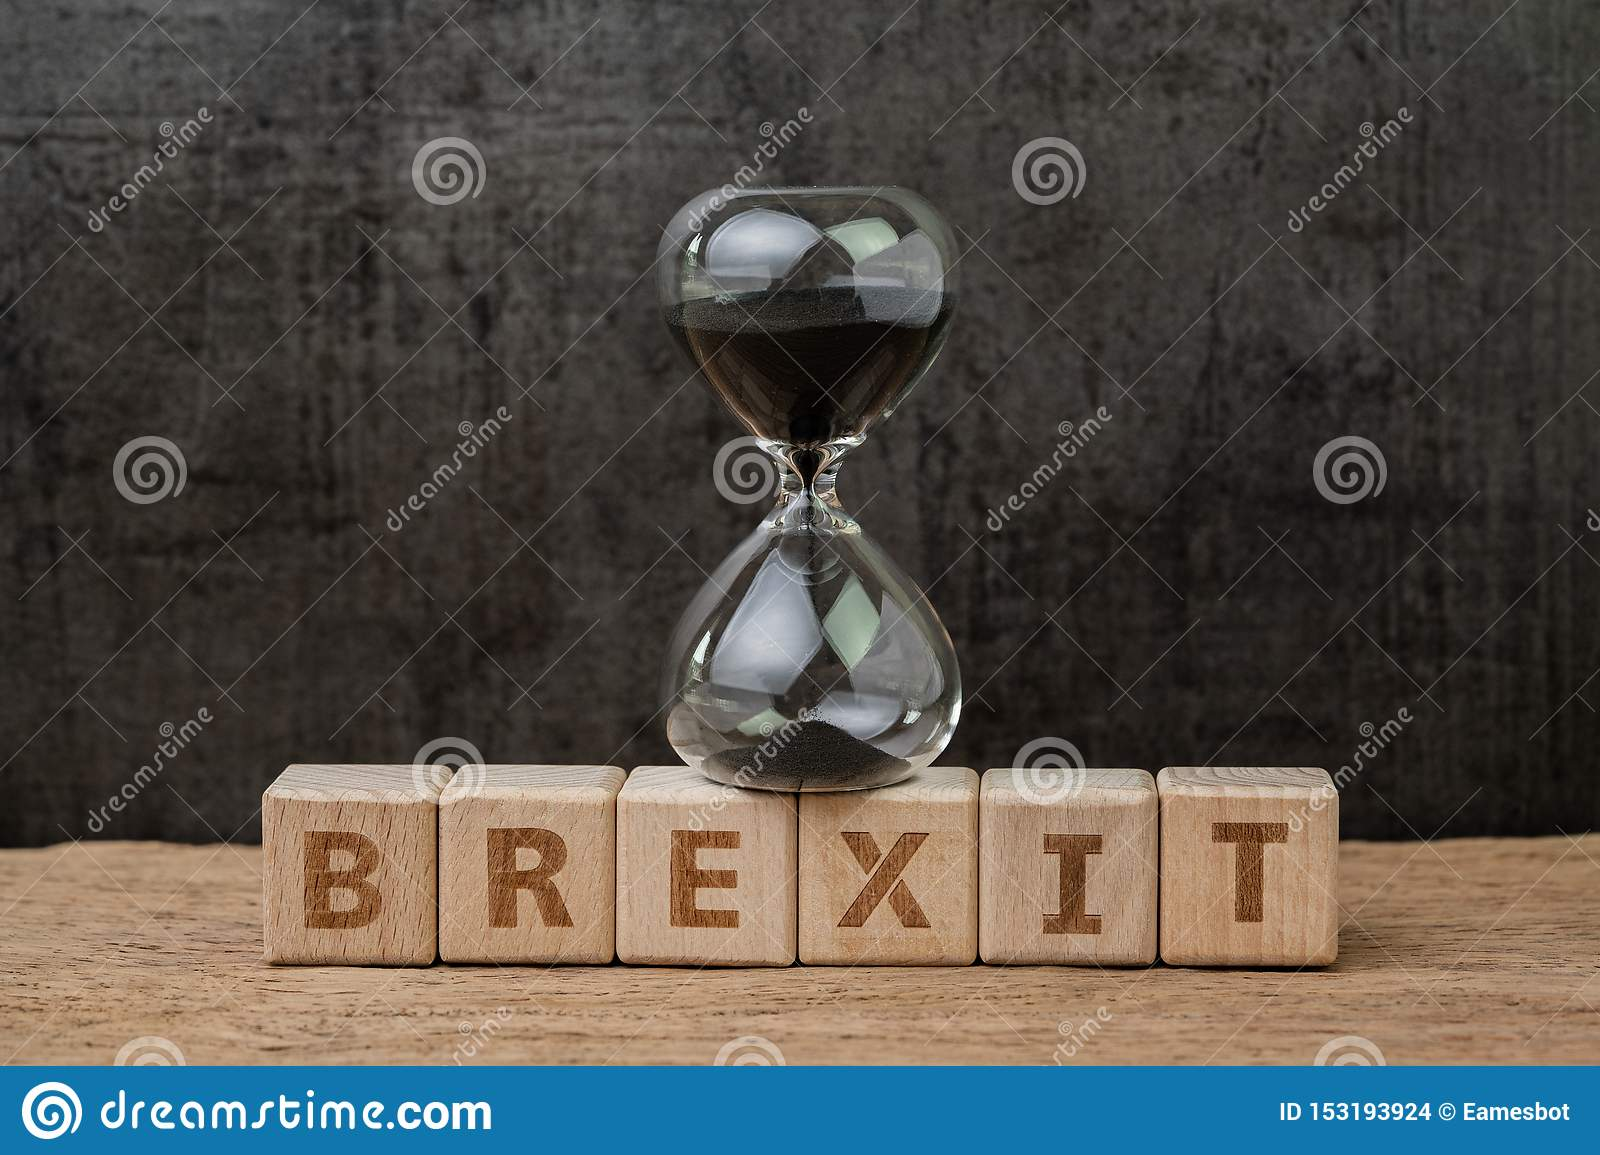 Brexit, time countdown for the UK to deal and withdraw from Euro zone concept, sandglass or hourglass on wooden cube block with